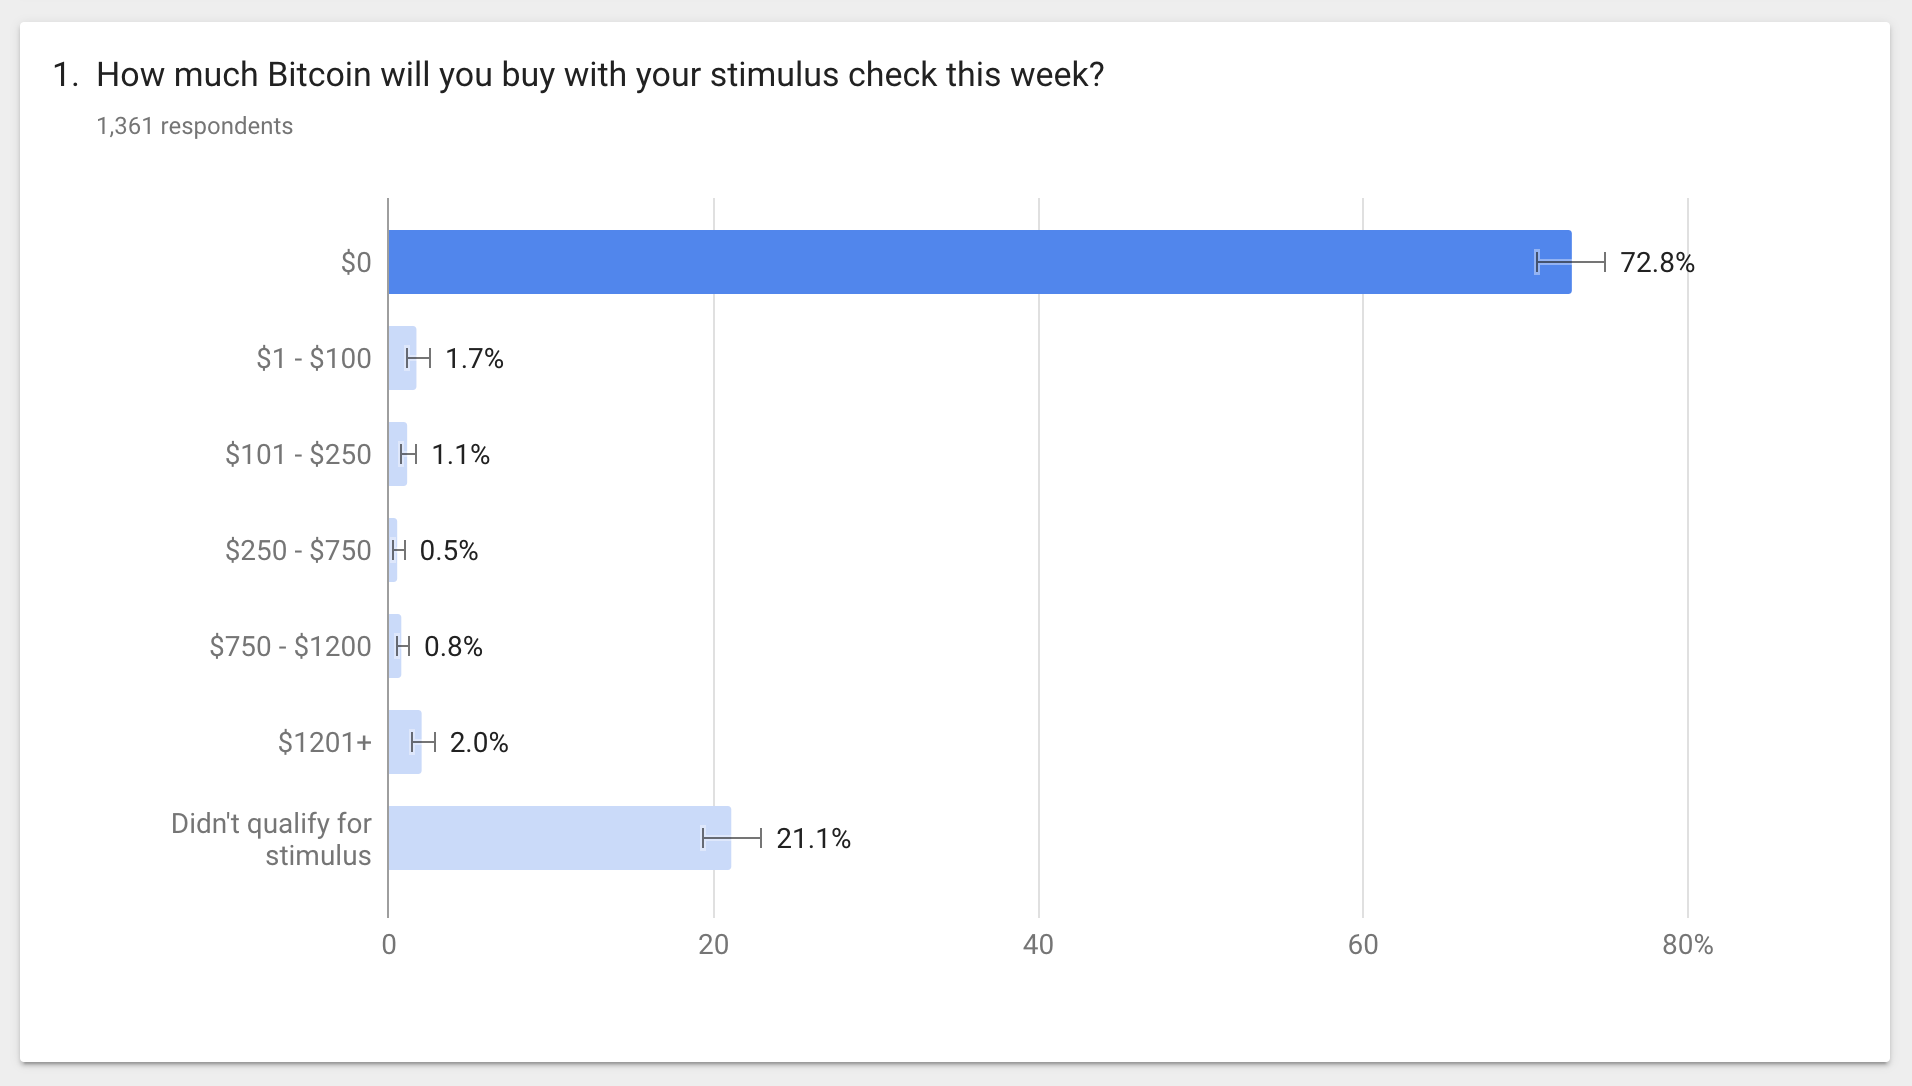 Survey results as of 3/21